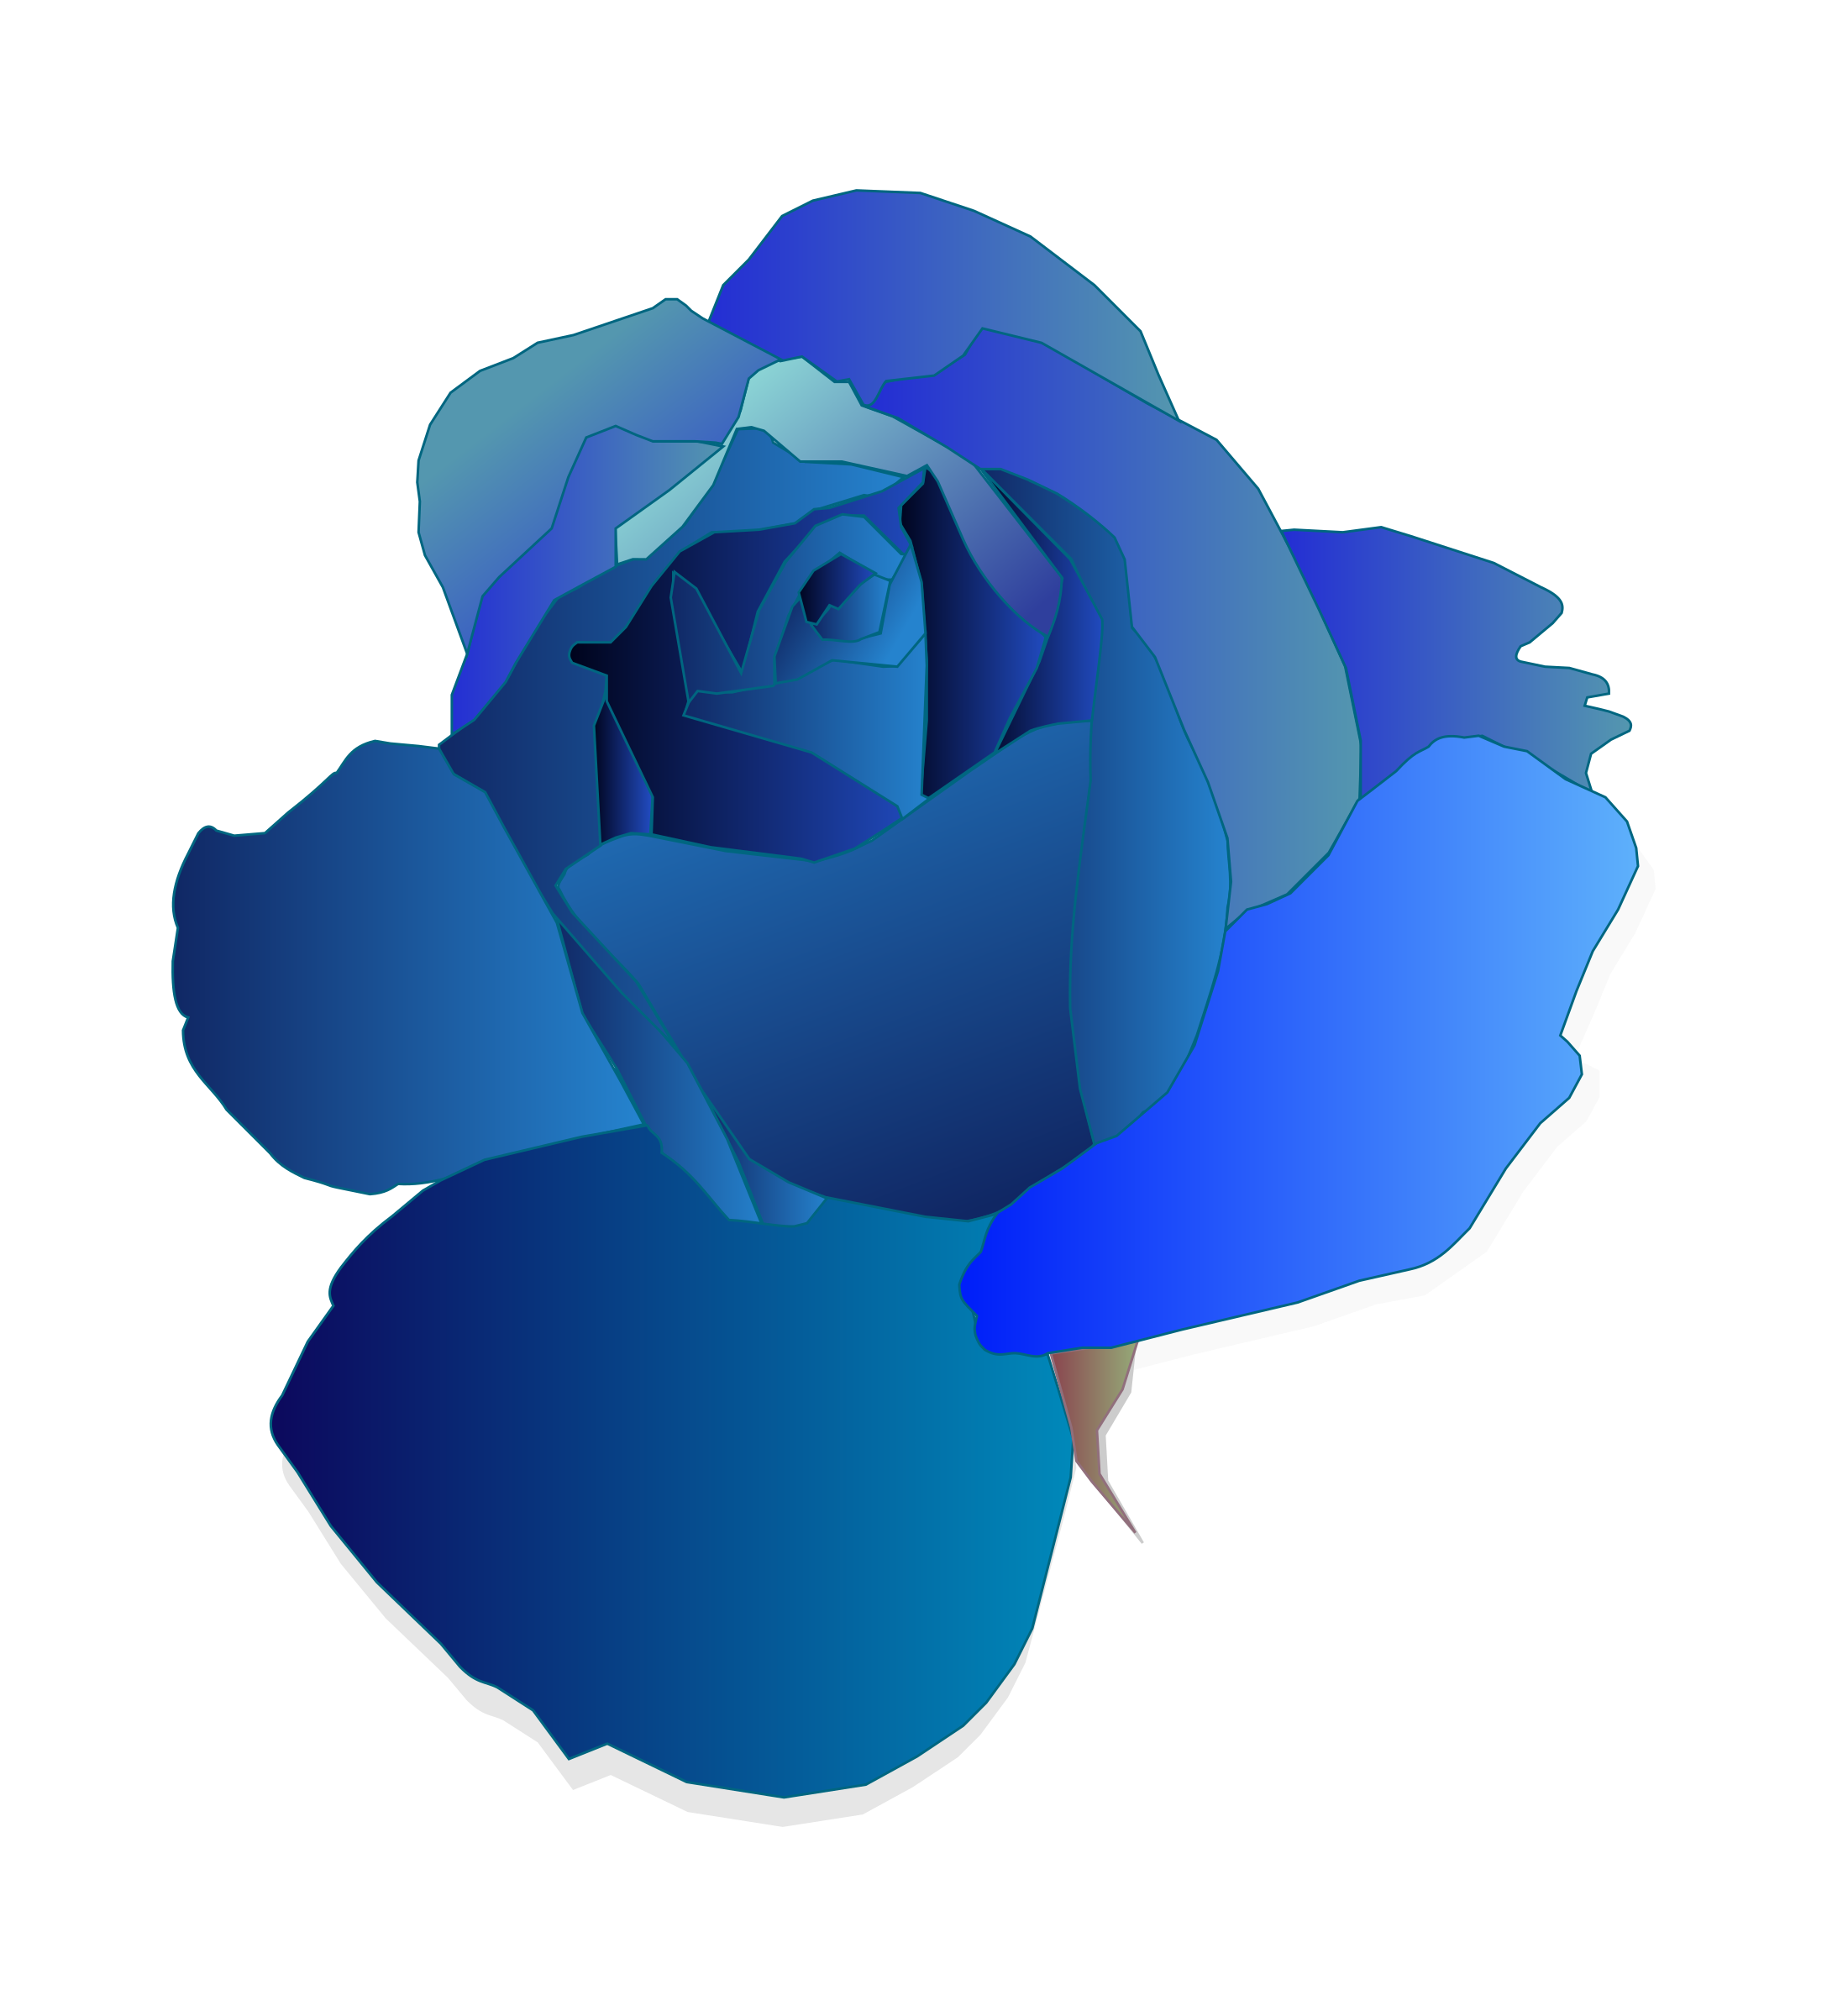 Blue Rose svg #15, Download drawings